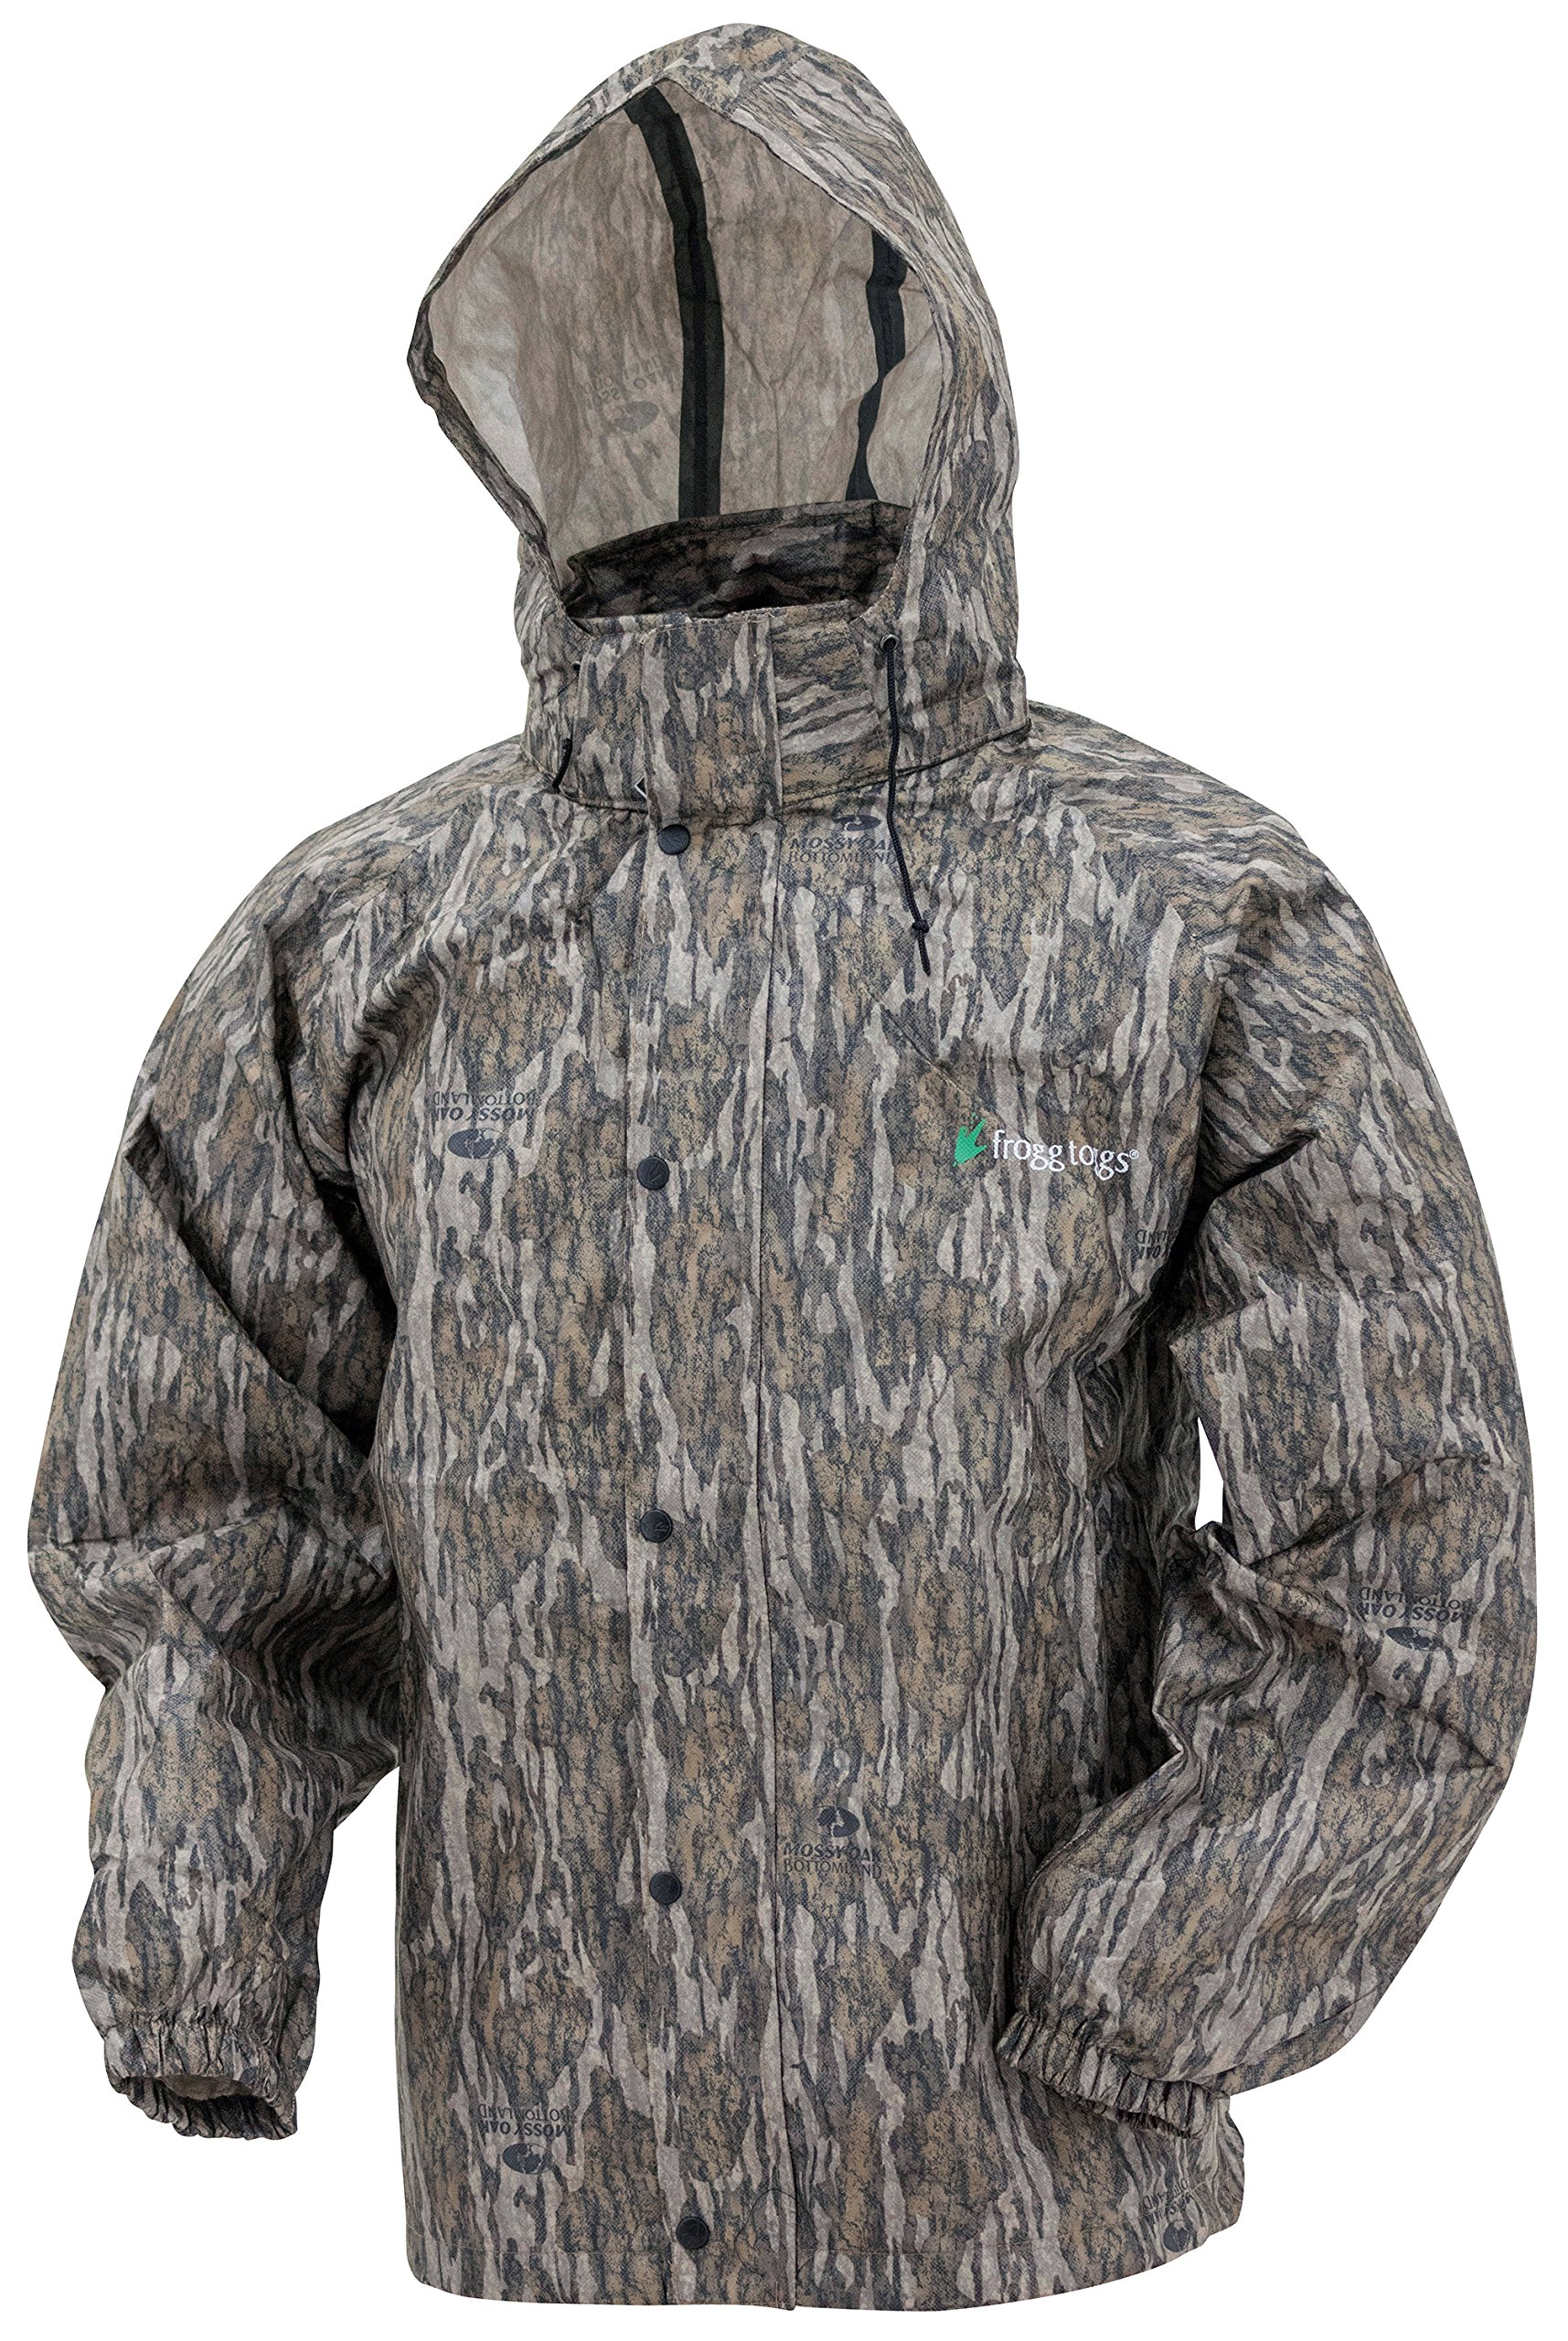 Frogg Toggs All Sport Rain Suit, Mossy Oak Bottomland, Size Medium by Frogg Toggs